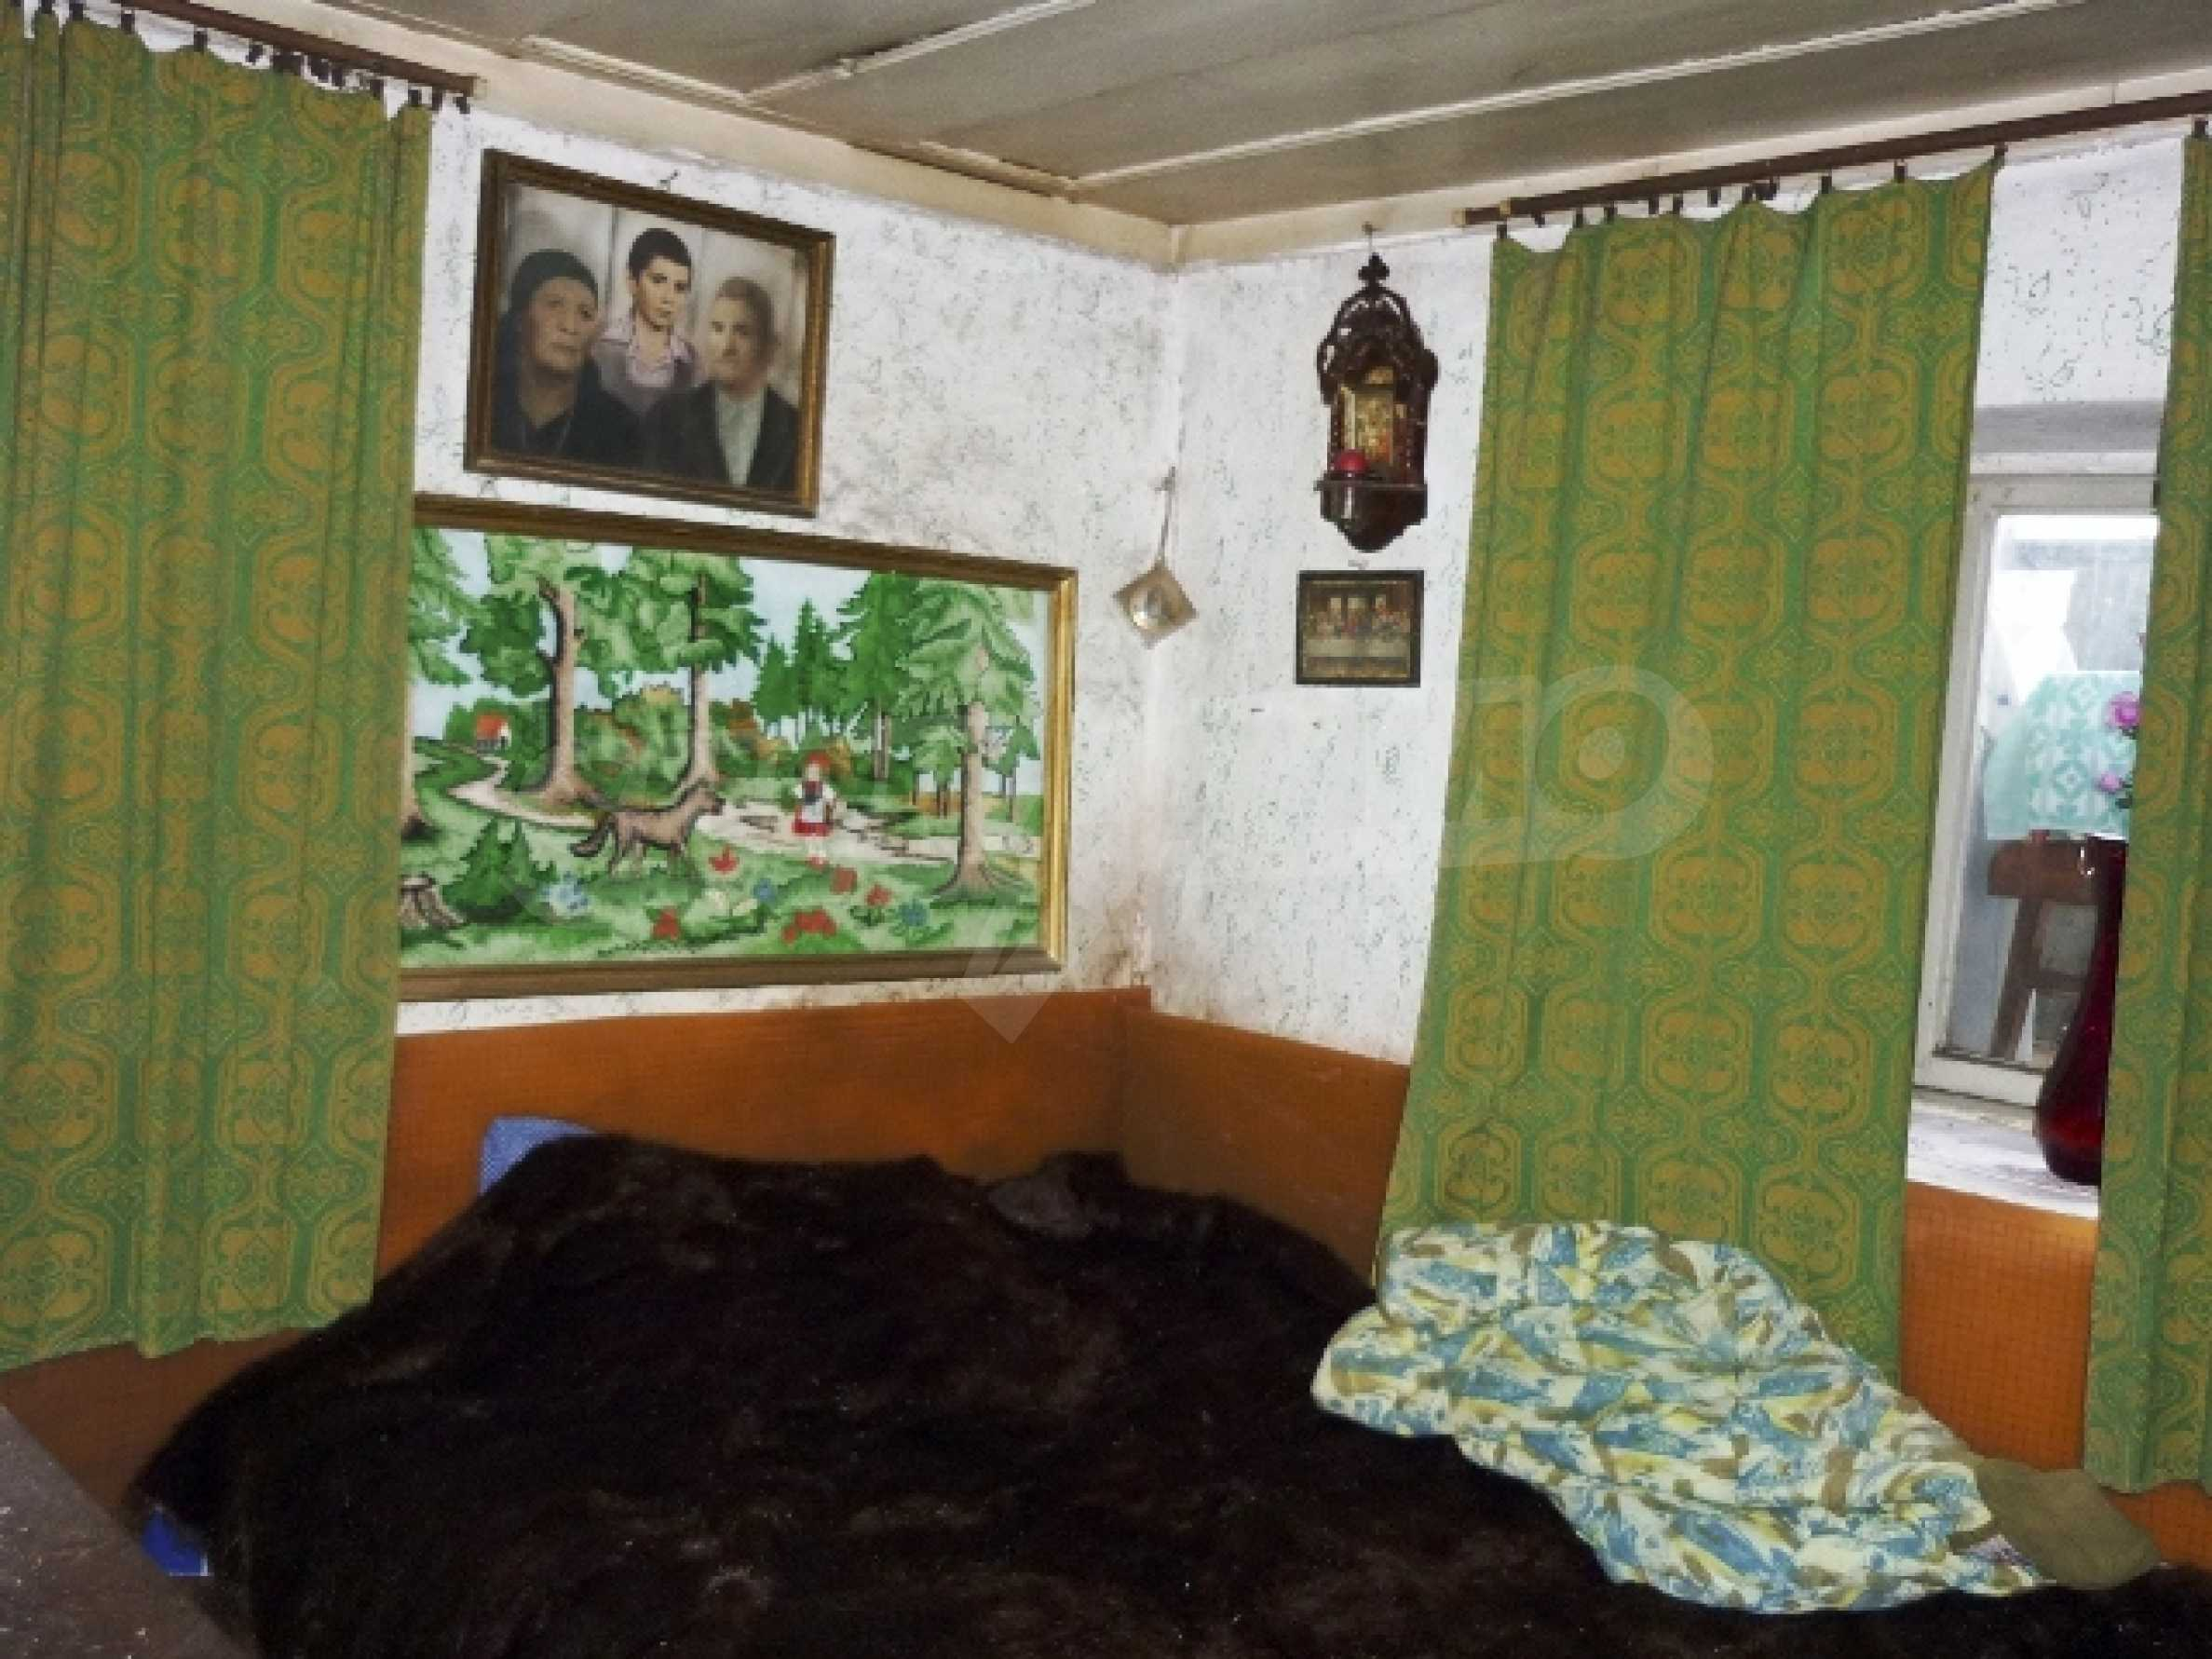 One-storey 5-bedroom house in Ostritsa village, Ruse district 6